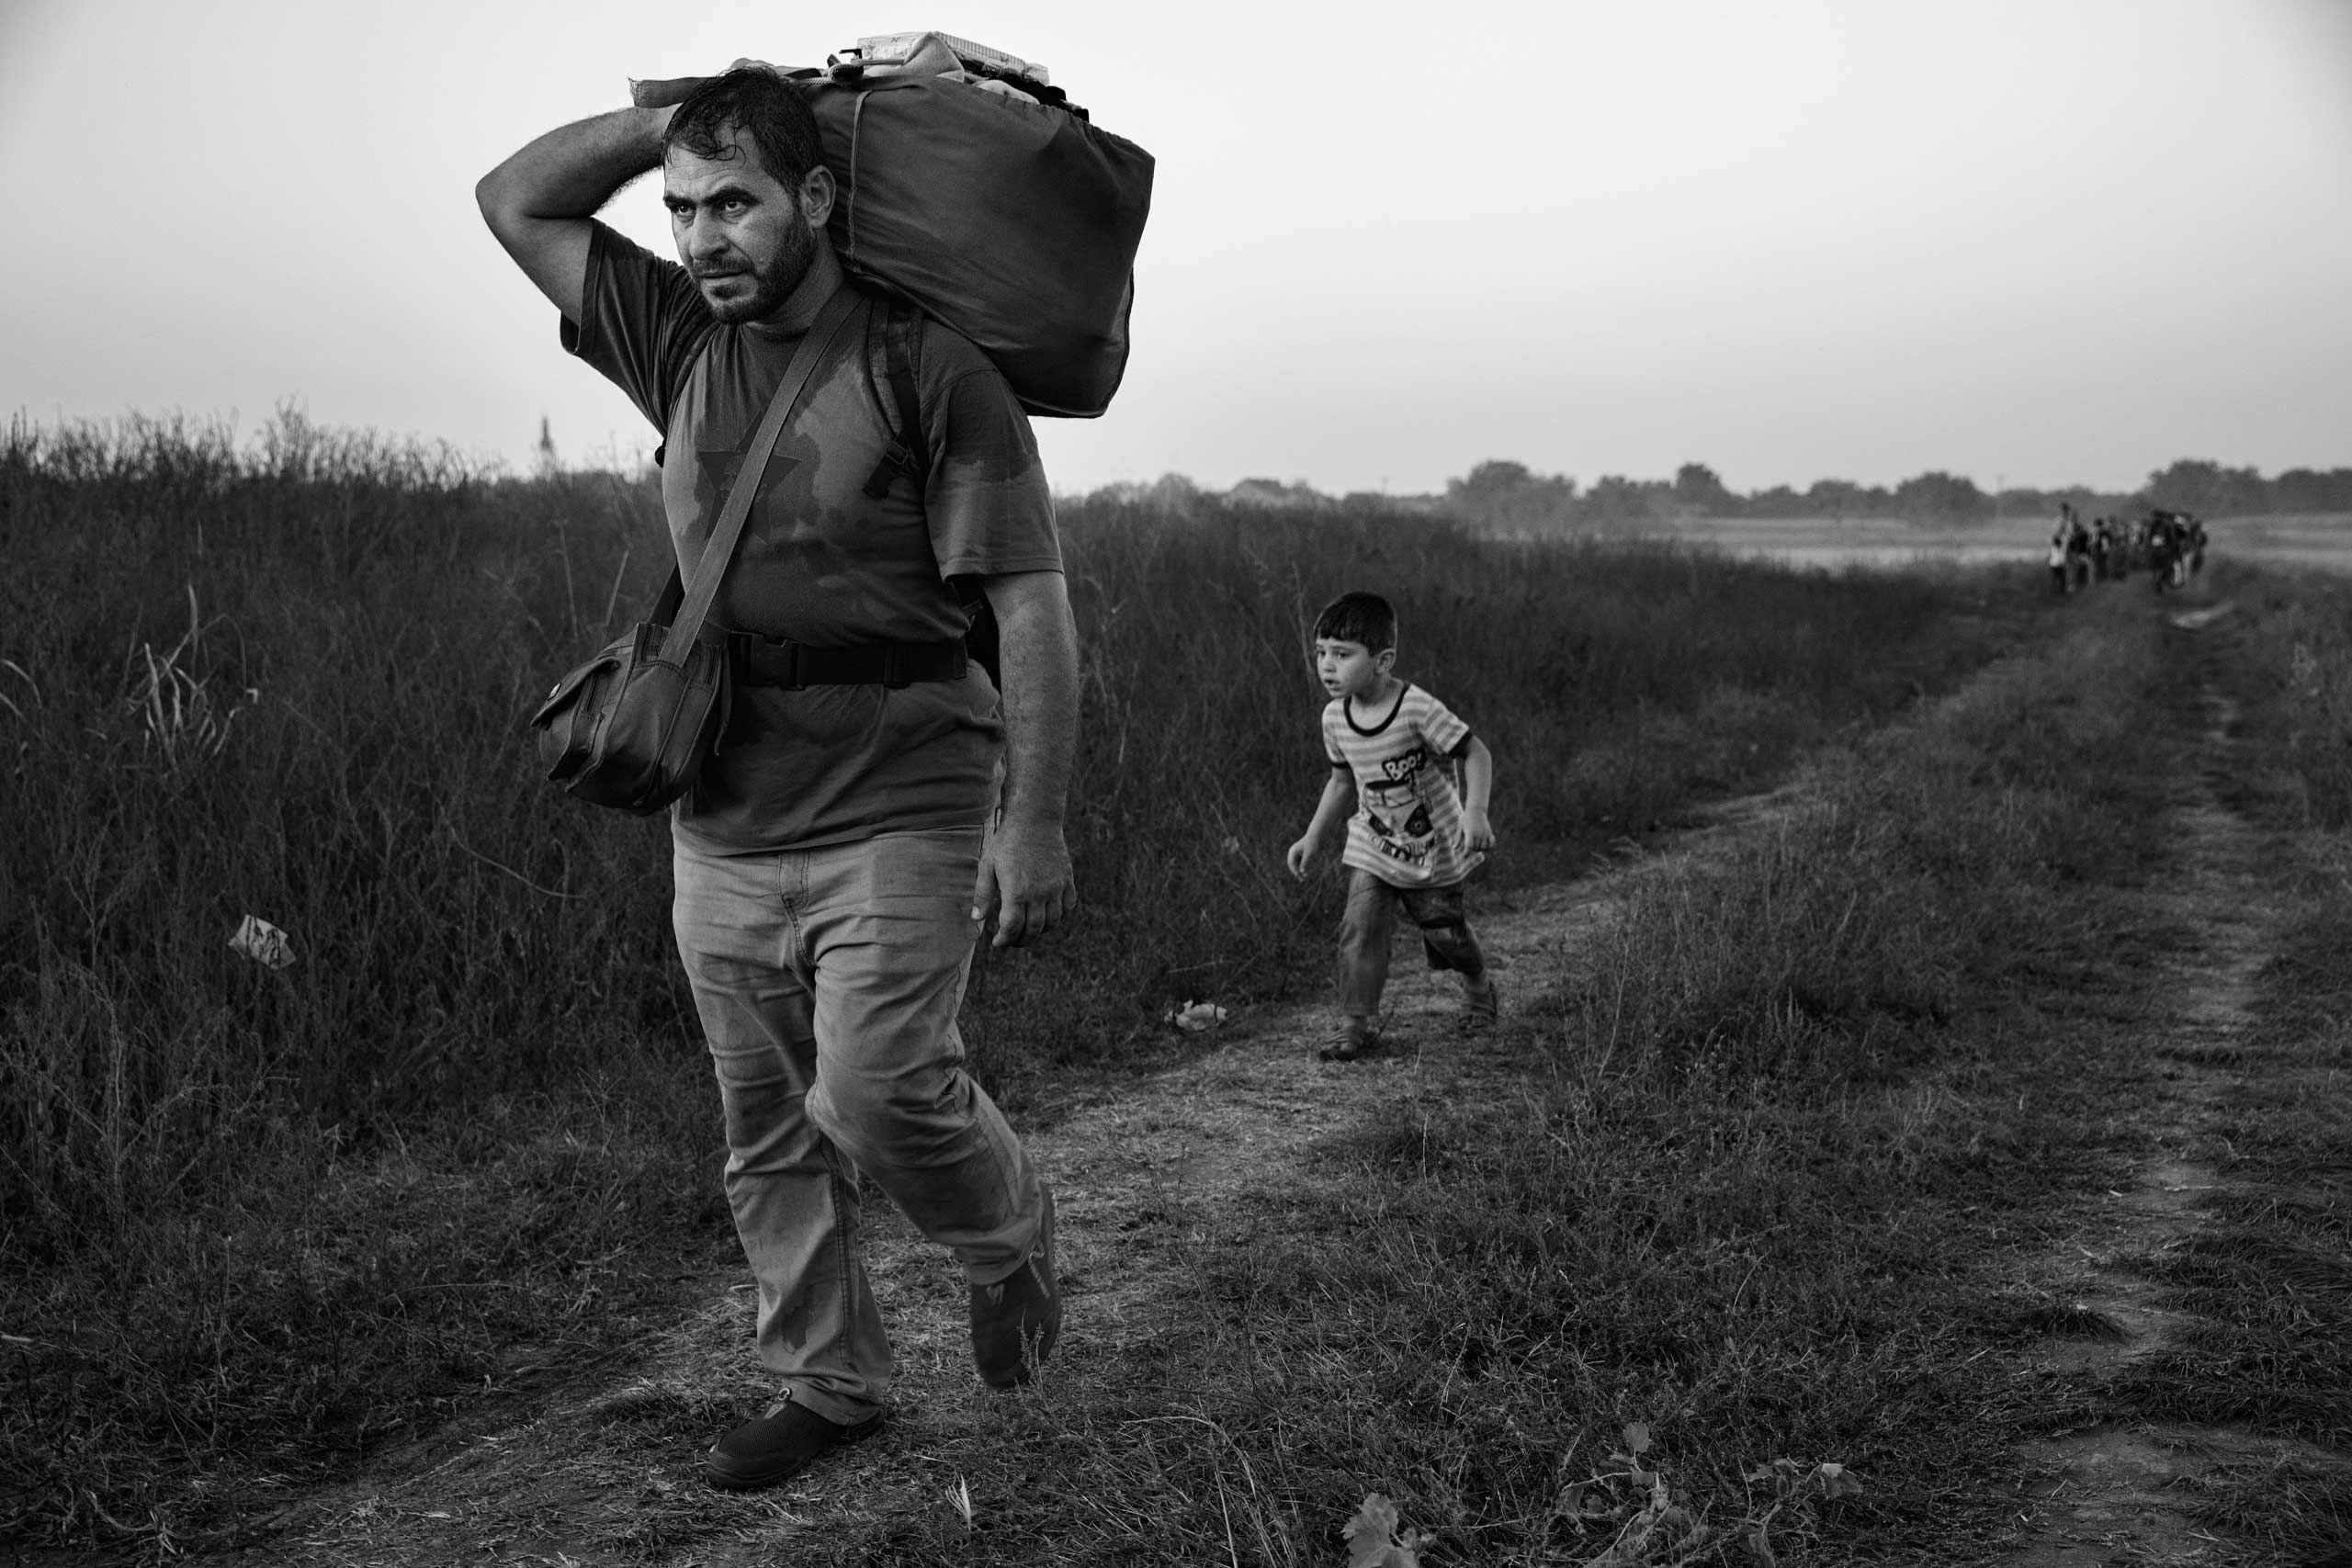 TIME LightBox: The Journey of HopeA man walks with his son behind him as they make their way to the train station in Tovarnik, Croatia, on the border with Serbia. In the Balkans, many migrants began traveling by foot, echoing more ancient journeys, Sept. 17, 2015.